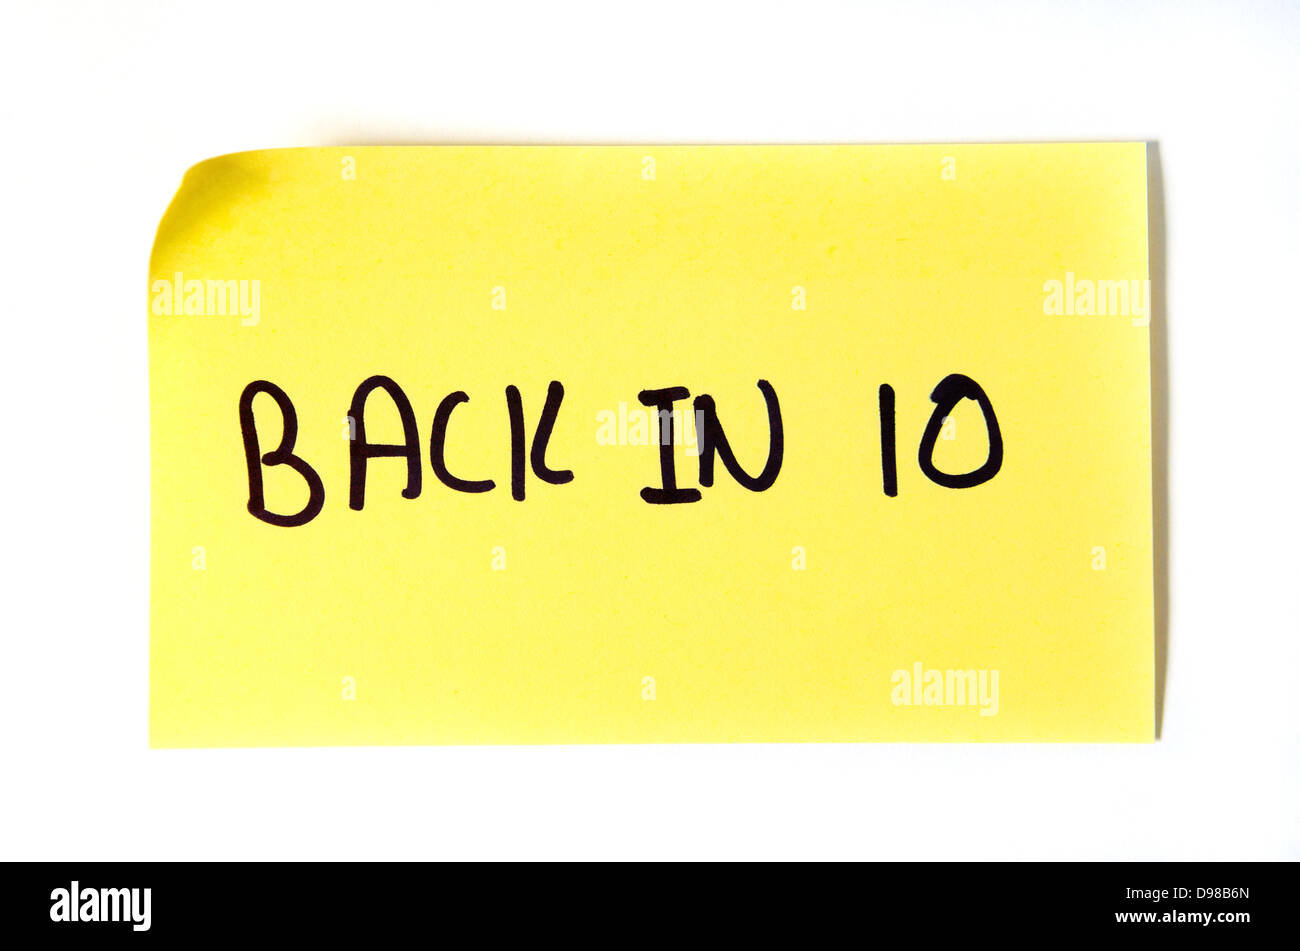 Back in 10 written on a yellow post-it note - Stock Image